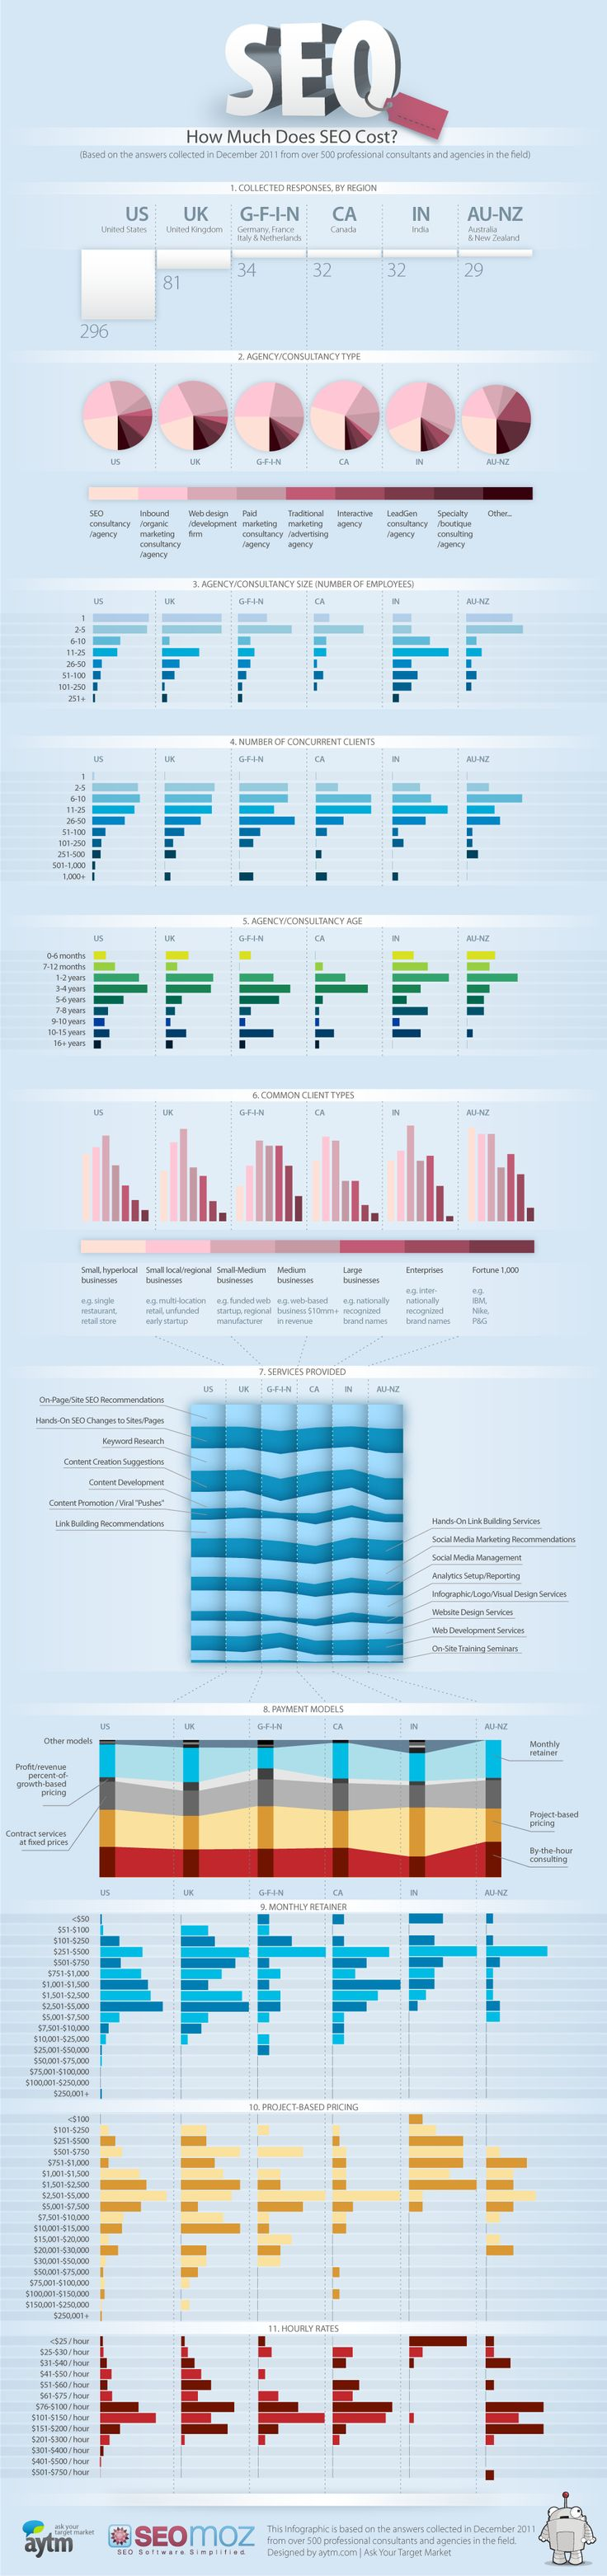 How much does SEO cost? Cool infographic